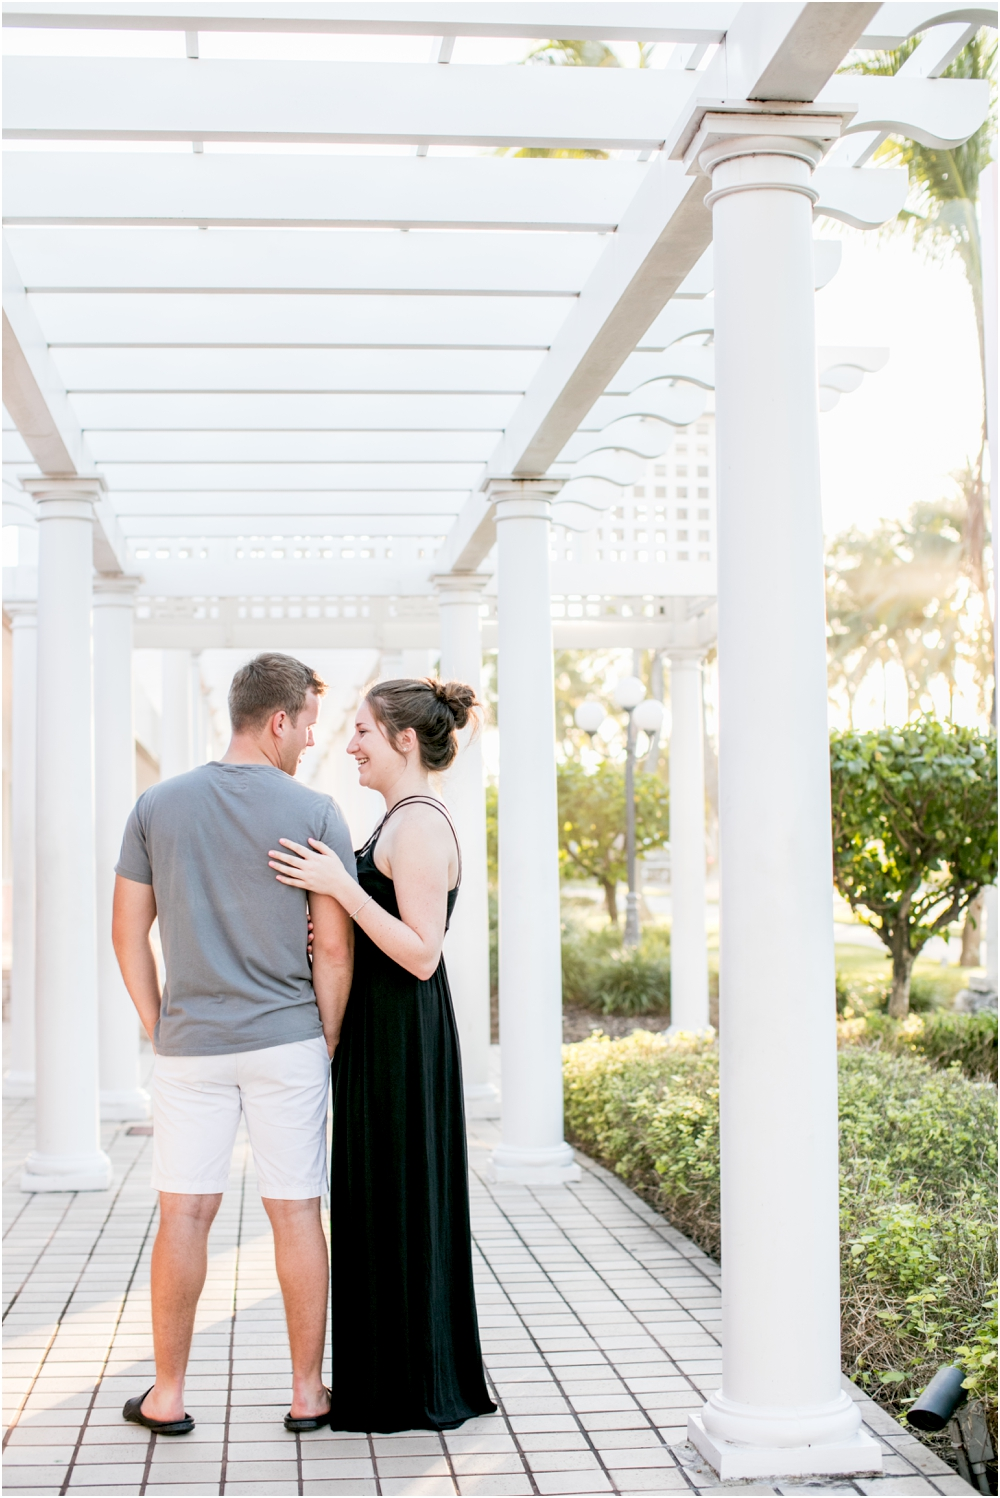 alyssa josh bahama engagement session beach living radiant photography_0019.jpg